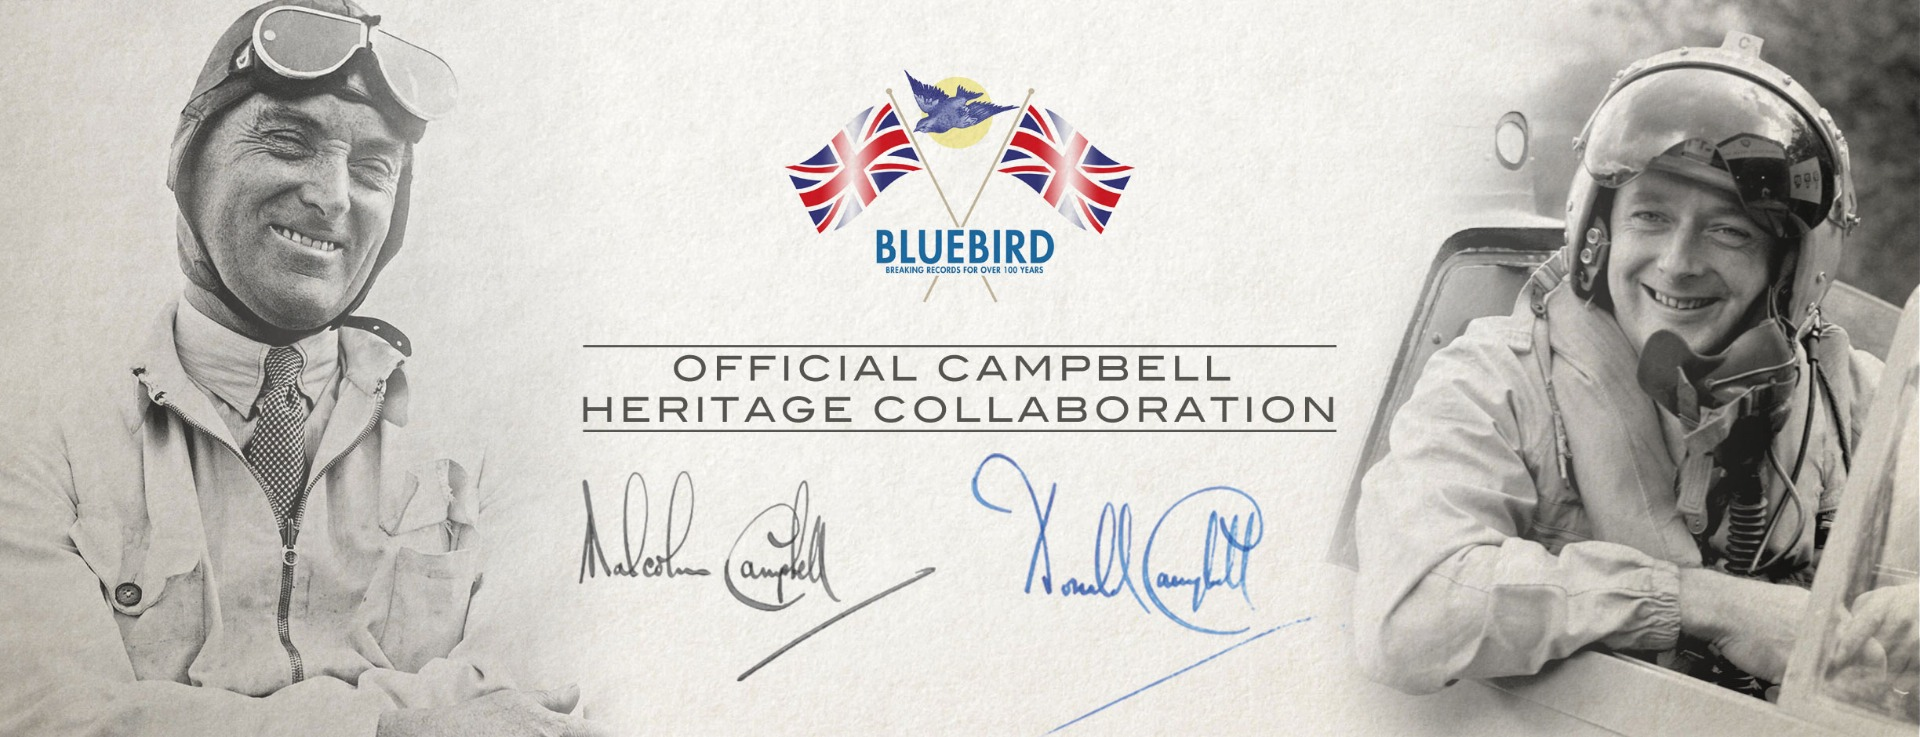 Campbell Heritage collaboration page